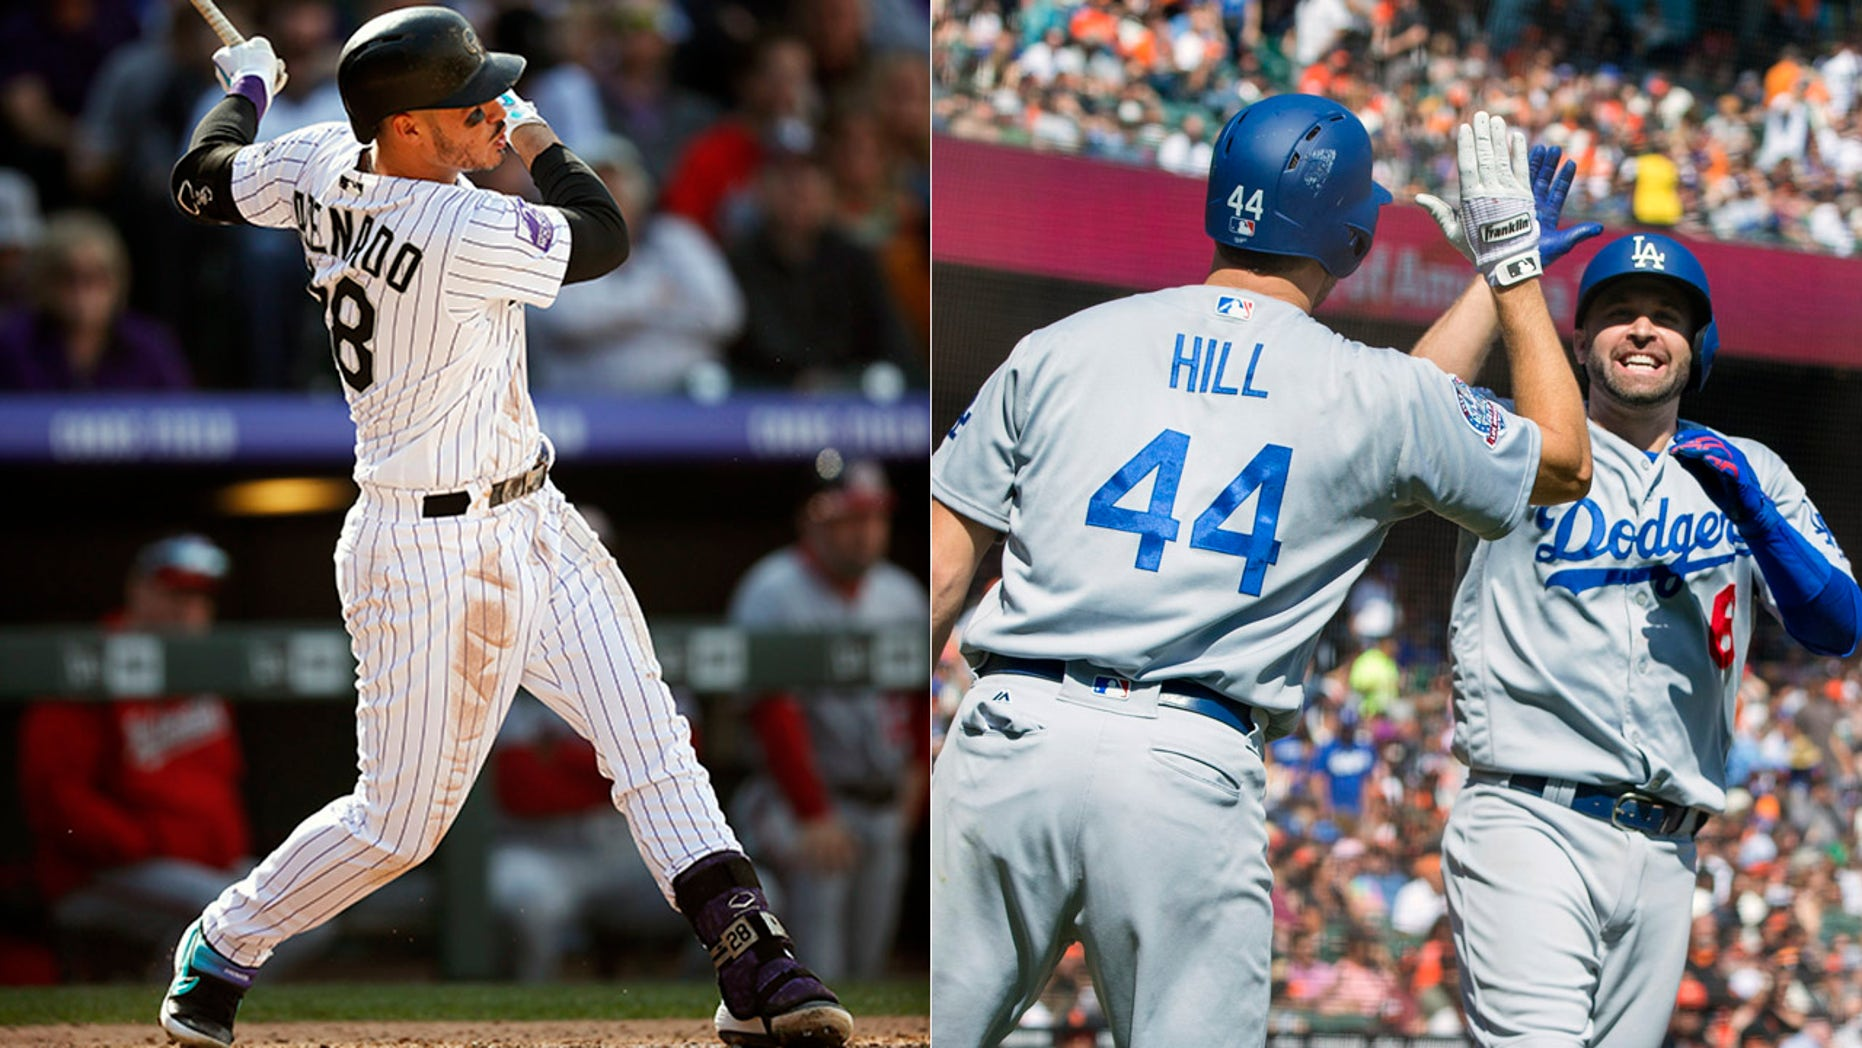 The Colorado Rockies and Los Angeles Dodgers will meet on Monday to decide the National League West title.